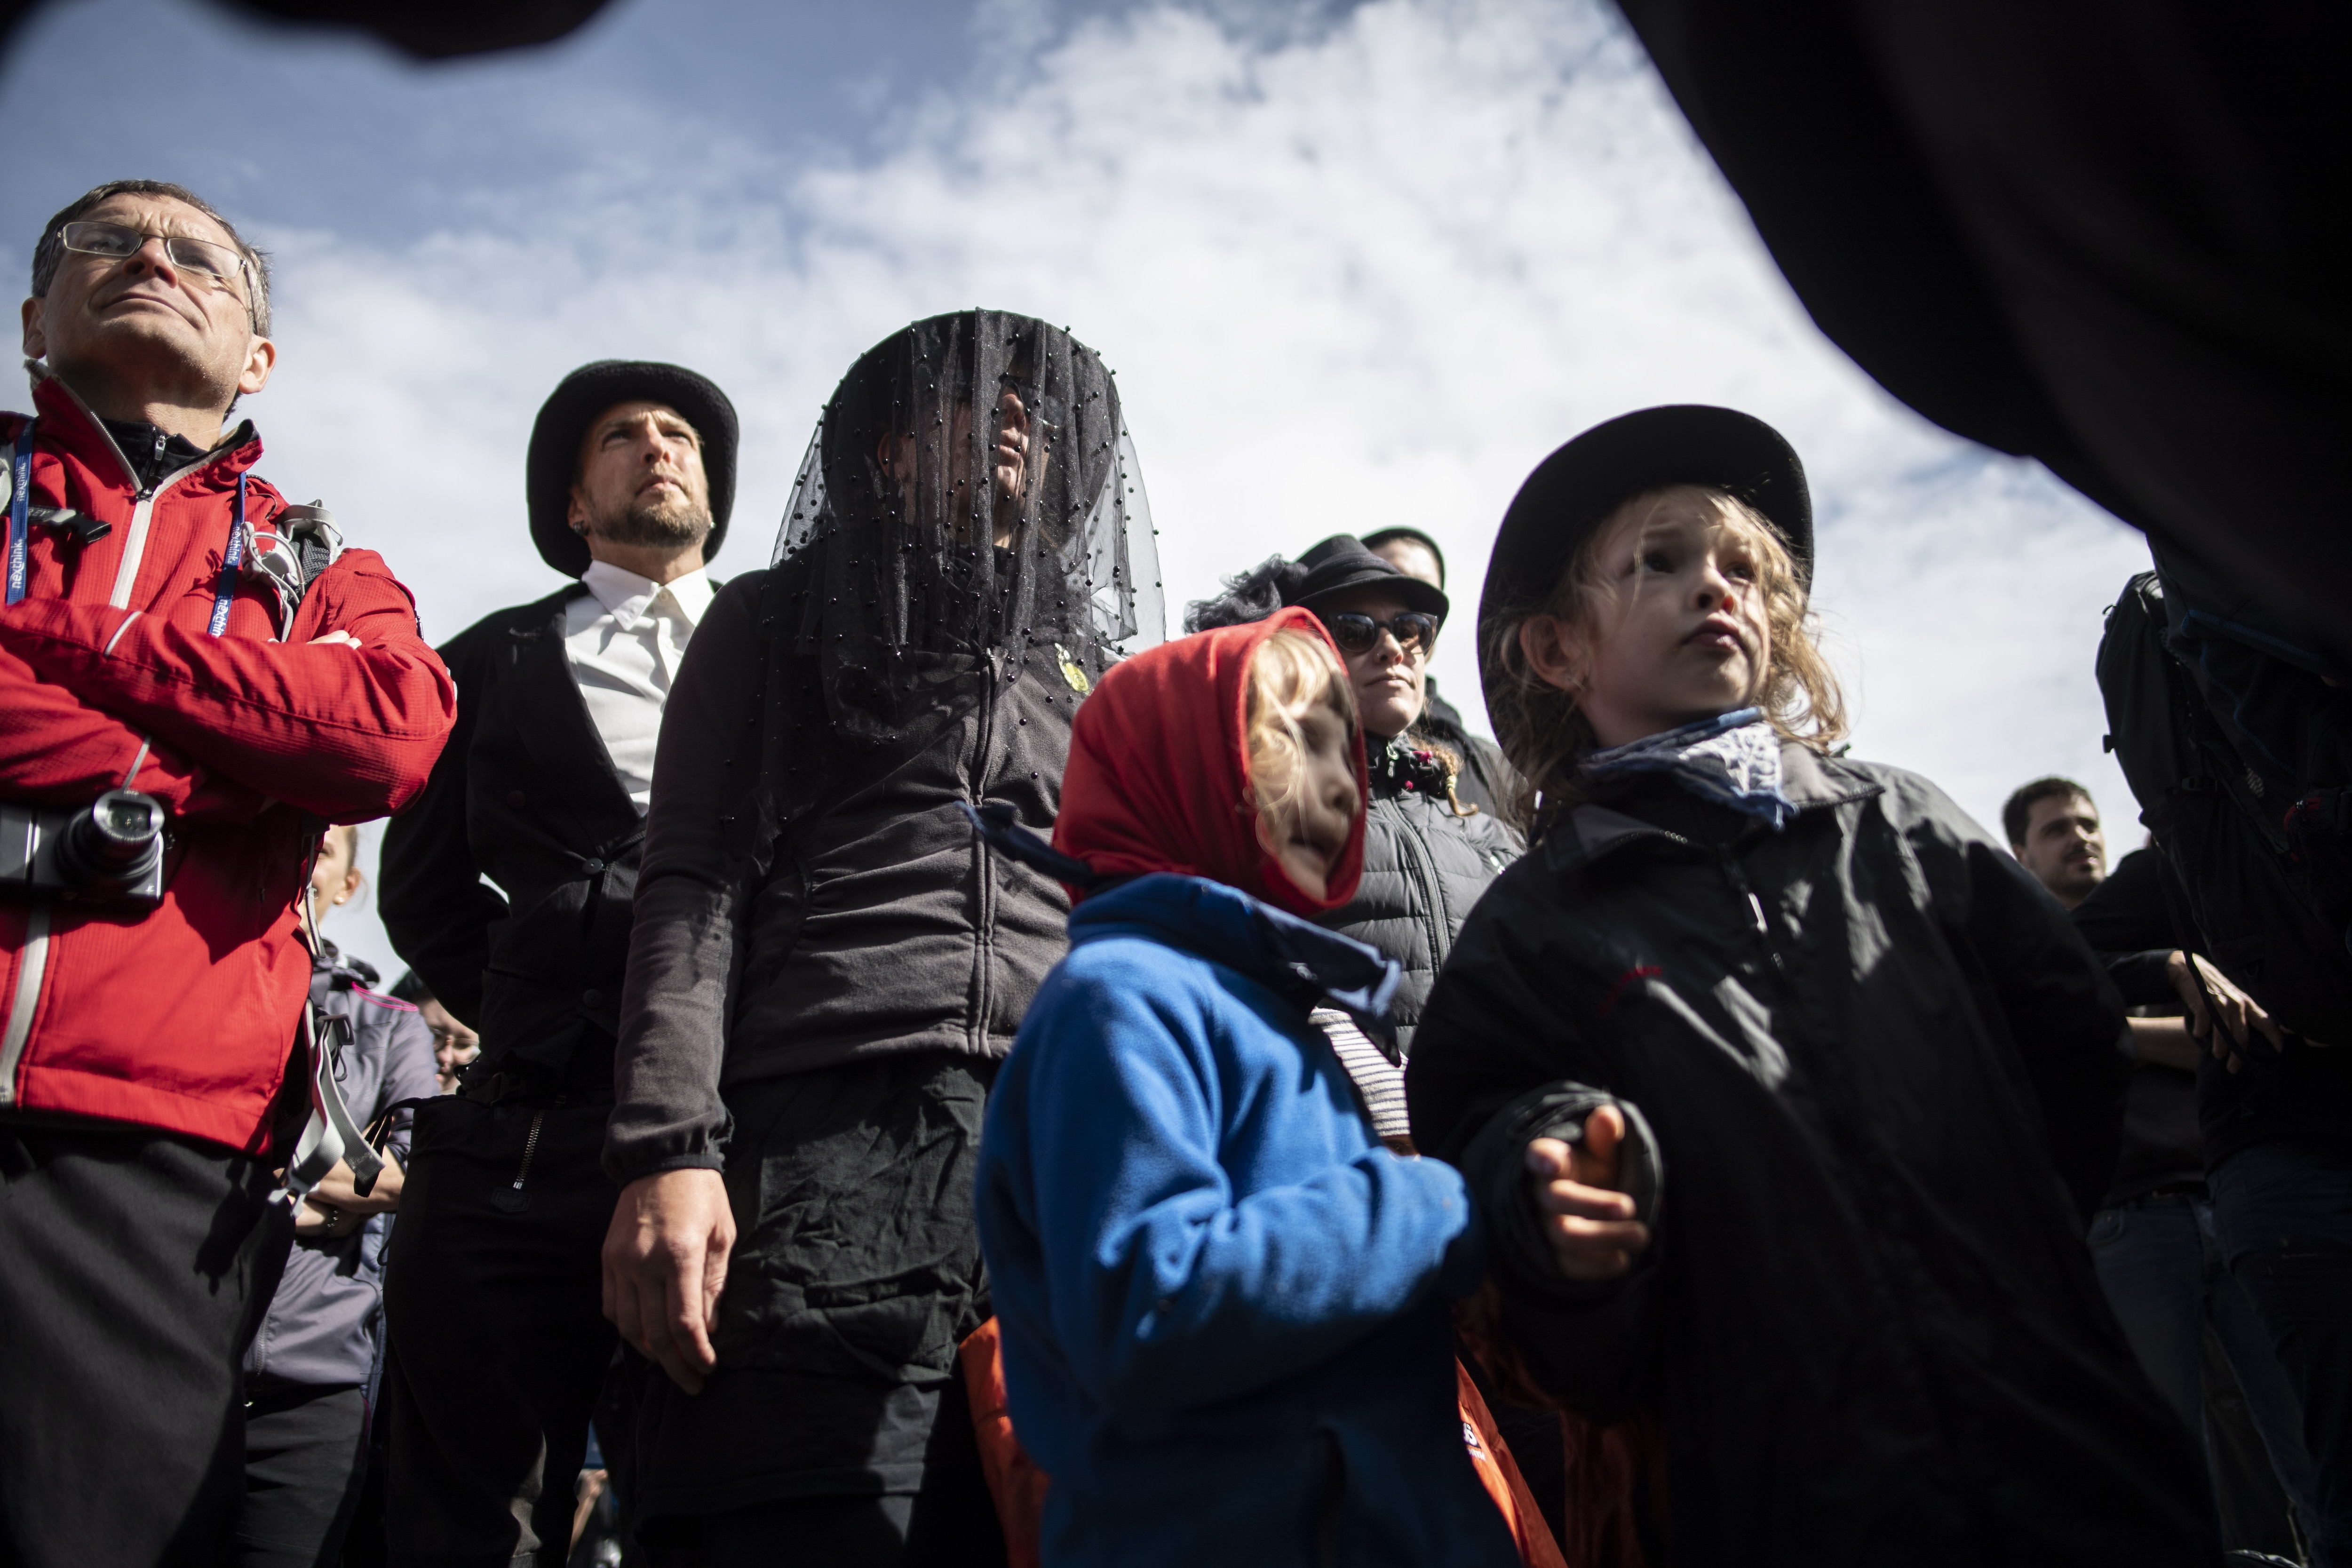 People in black clothing attend a commemoration for the dying glacier of Pizol mountain, in Wangs, Switzerland.